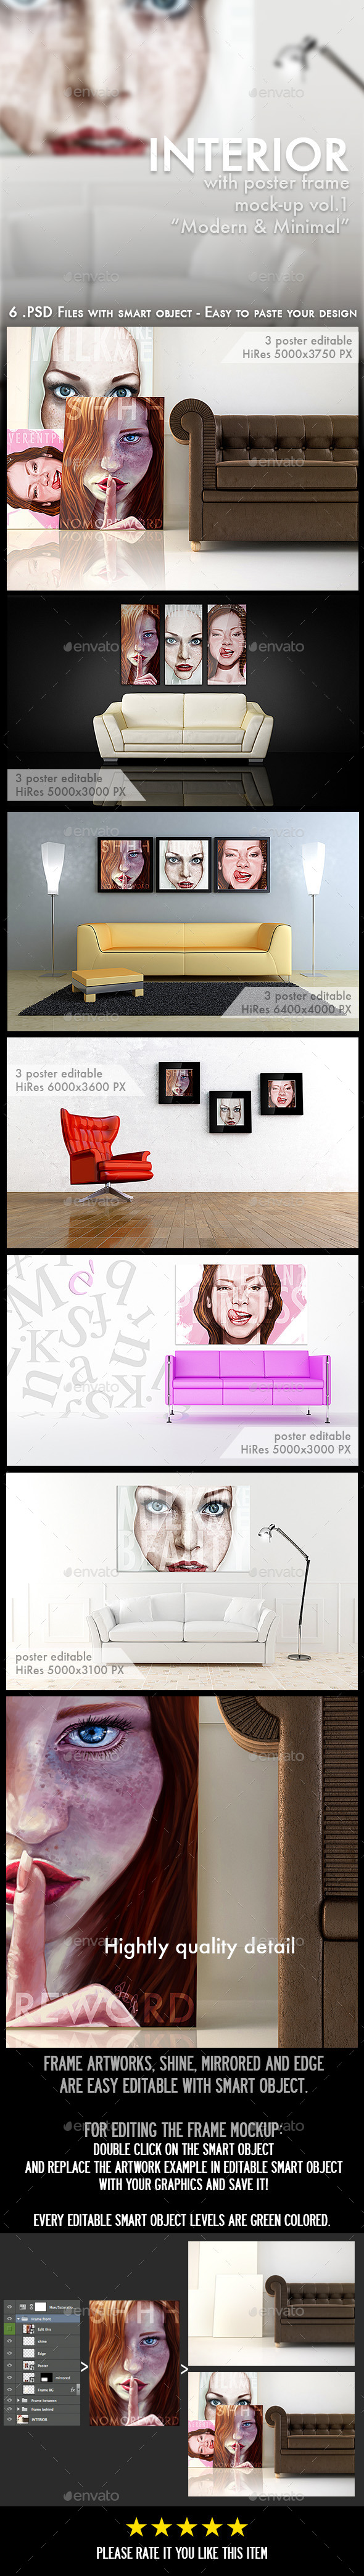 GraphicRiver Interior with Poster and Frame Mock-Ups 8997633